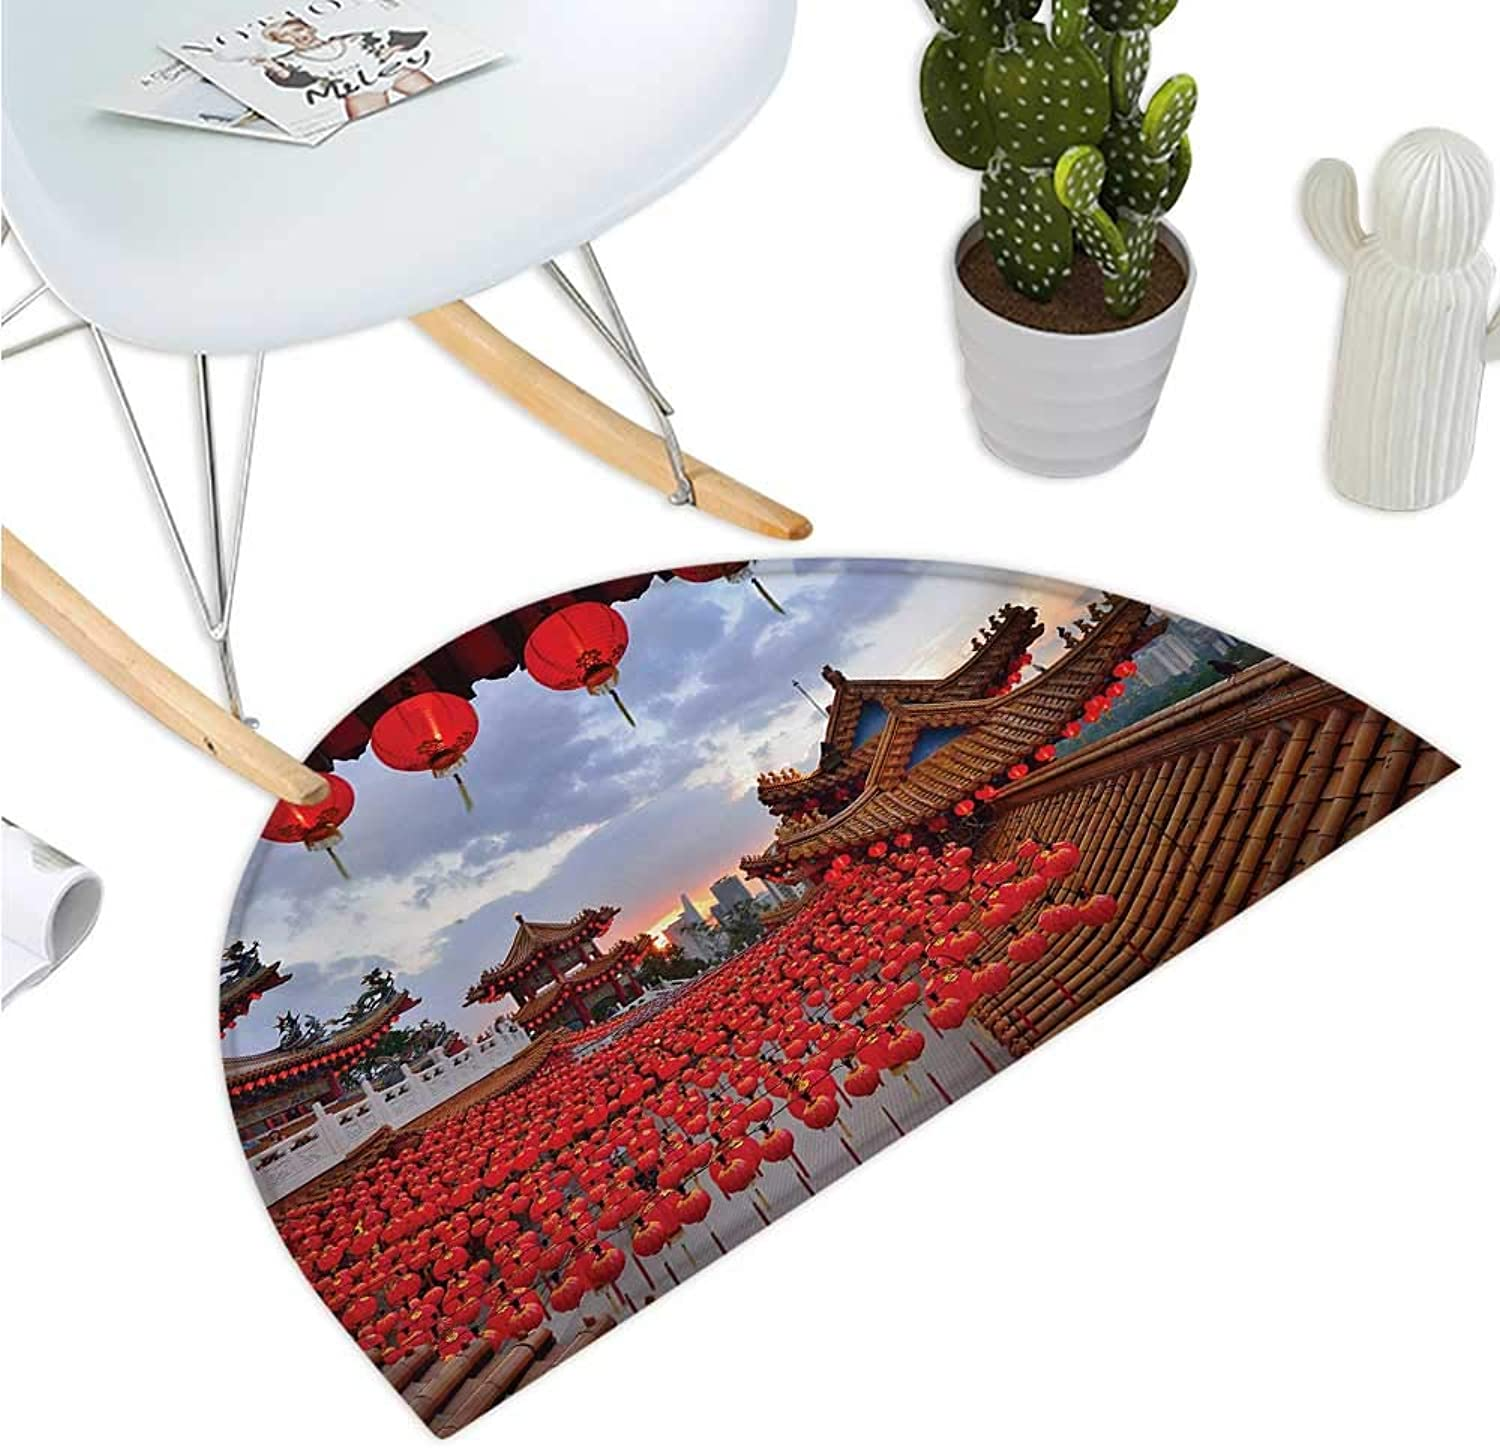 Lantern Semicircular Cushion Oriental Lanterns Over A Temple Sunset Structure for Religious Rituals Image Entry Door Mat H 39.3  xD 59  Red Lavander